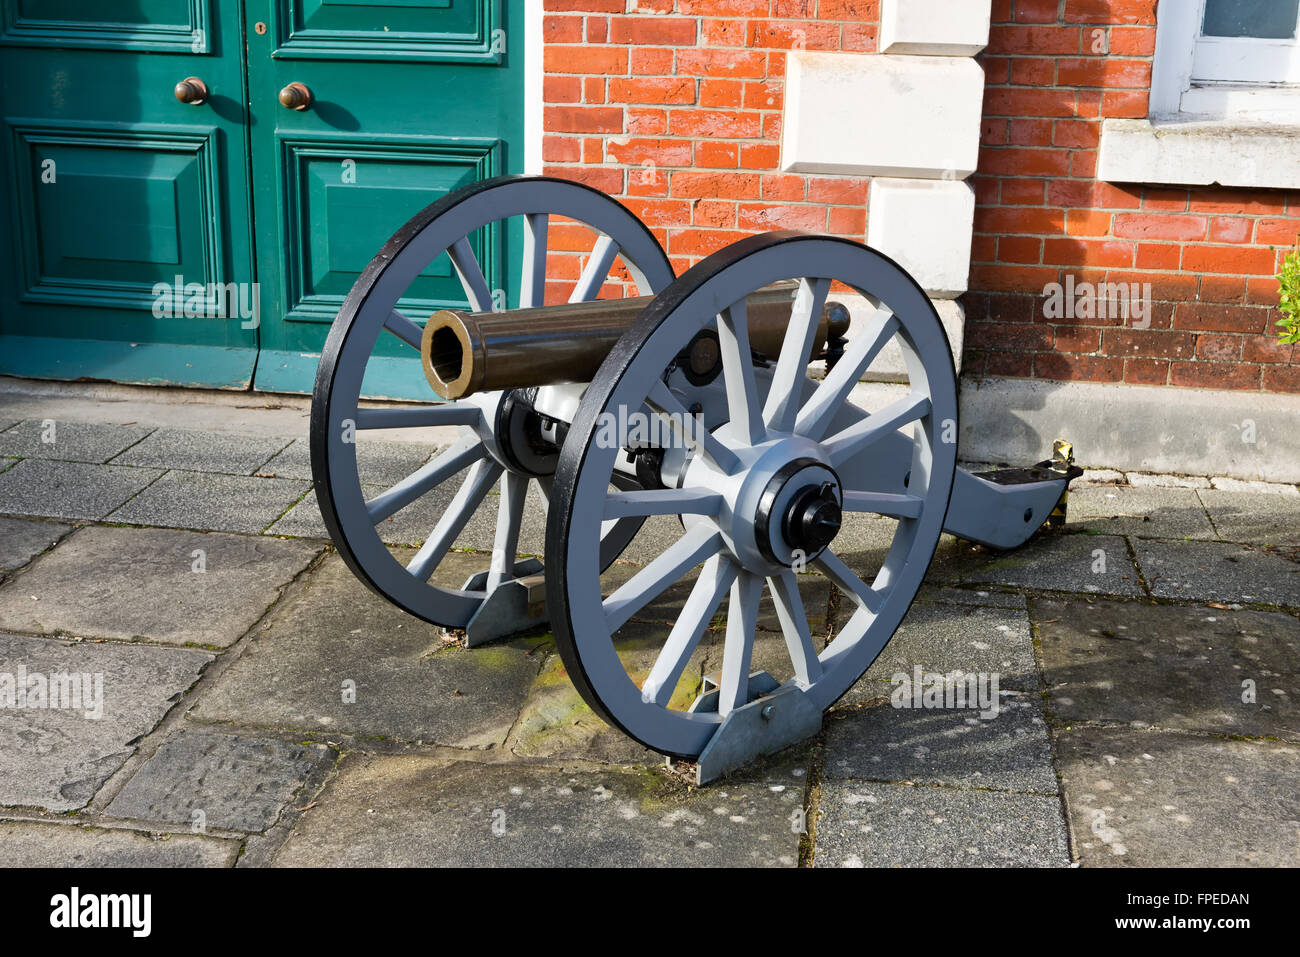 Historic antique cannon on wooden wheels locked to the ground outdoors as a display of warfare - Stock Image